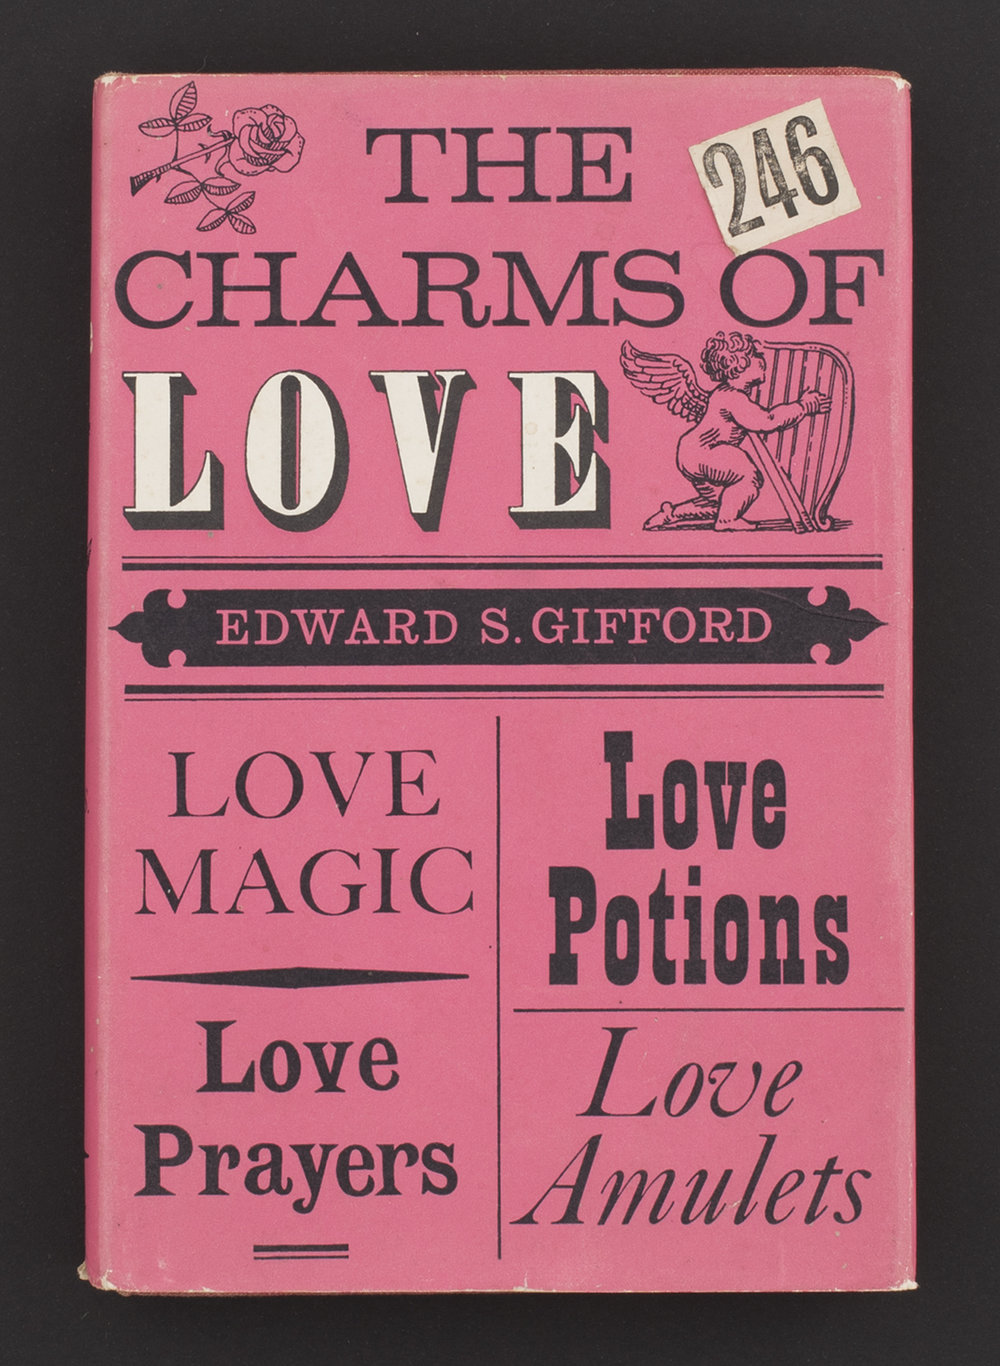 The Charms of Love, 1963, found in Brighton